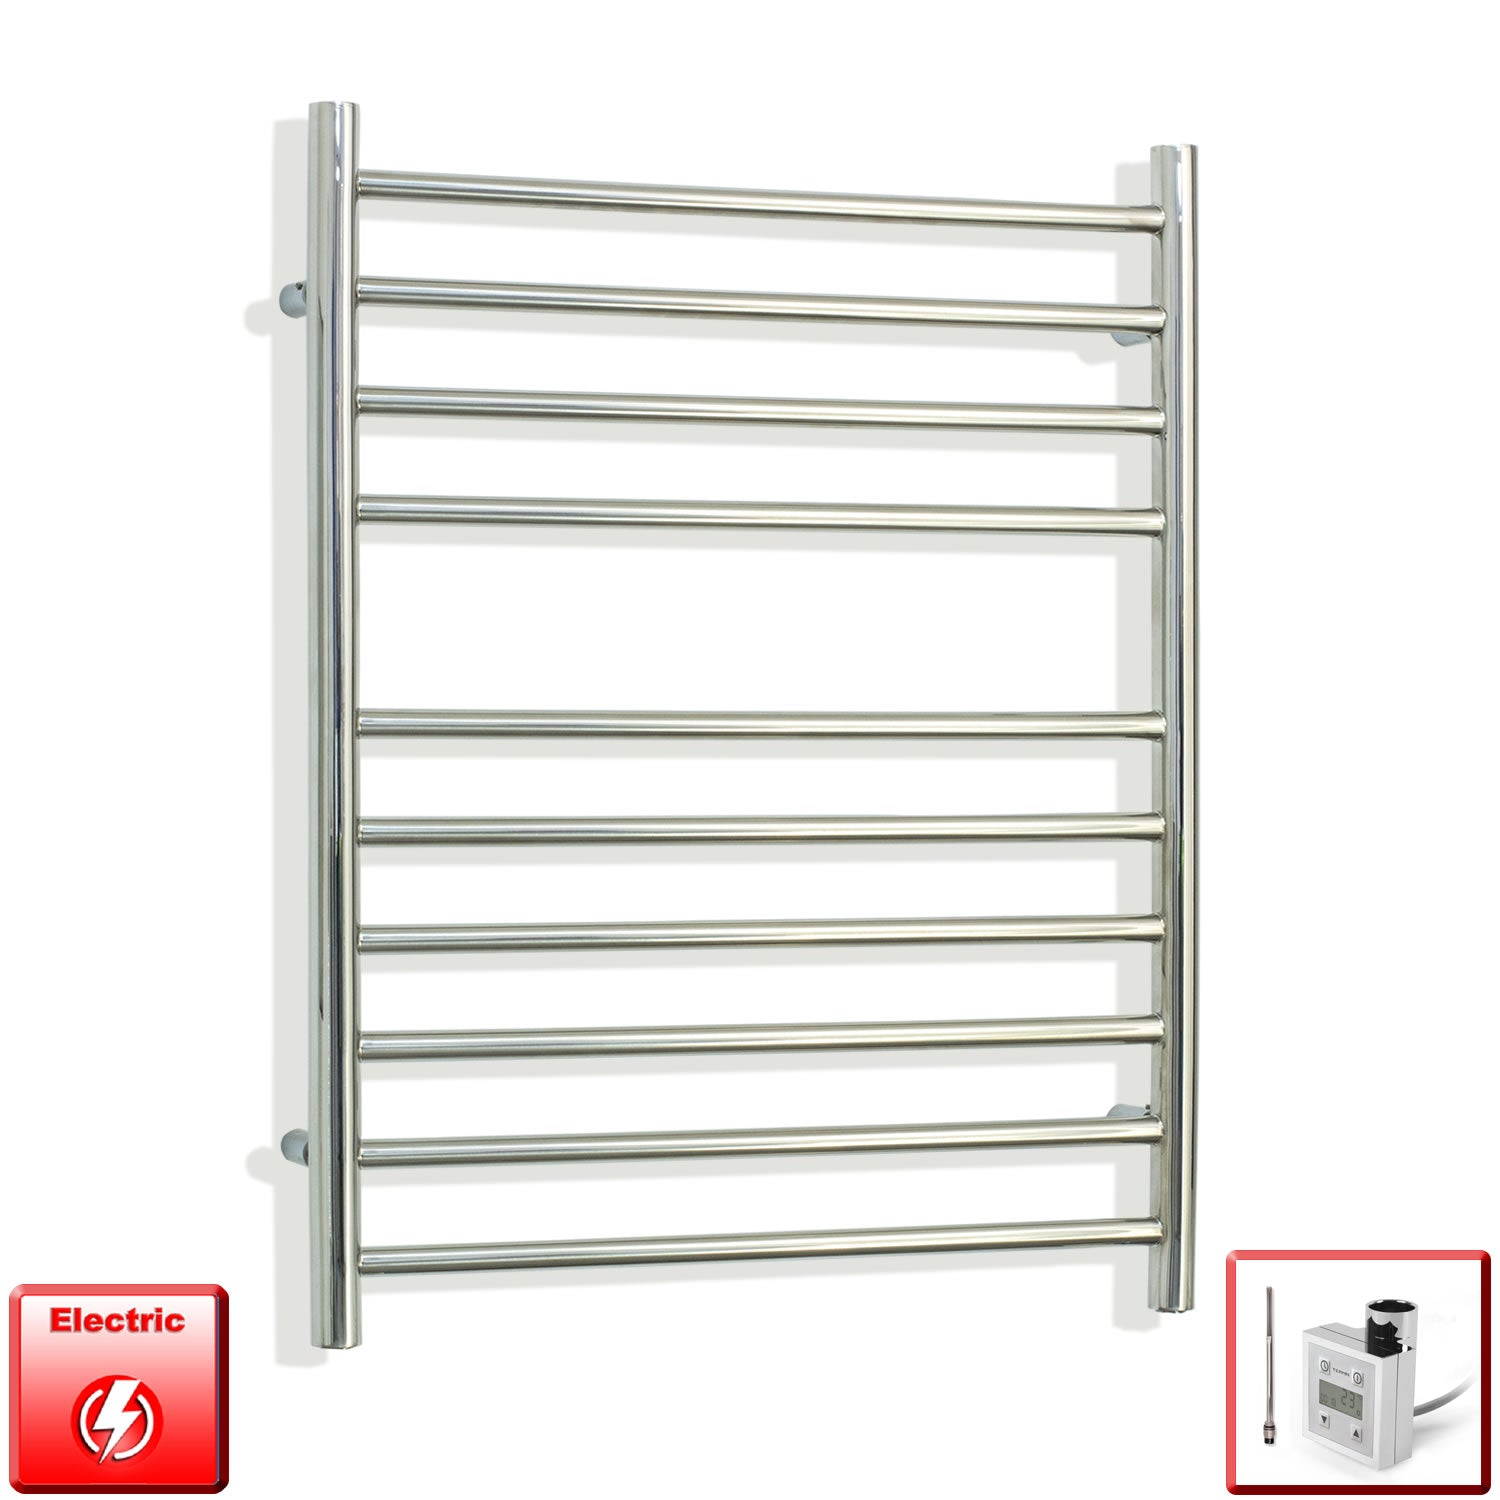 750 mm High 600 mm Wide Pre-Filled Electric Stainless Steel Heated Towel Rail Radiator ktx3 programmable thermostatic heating element